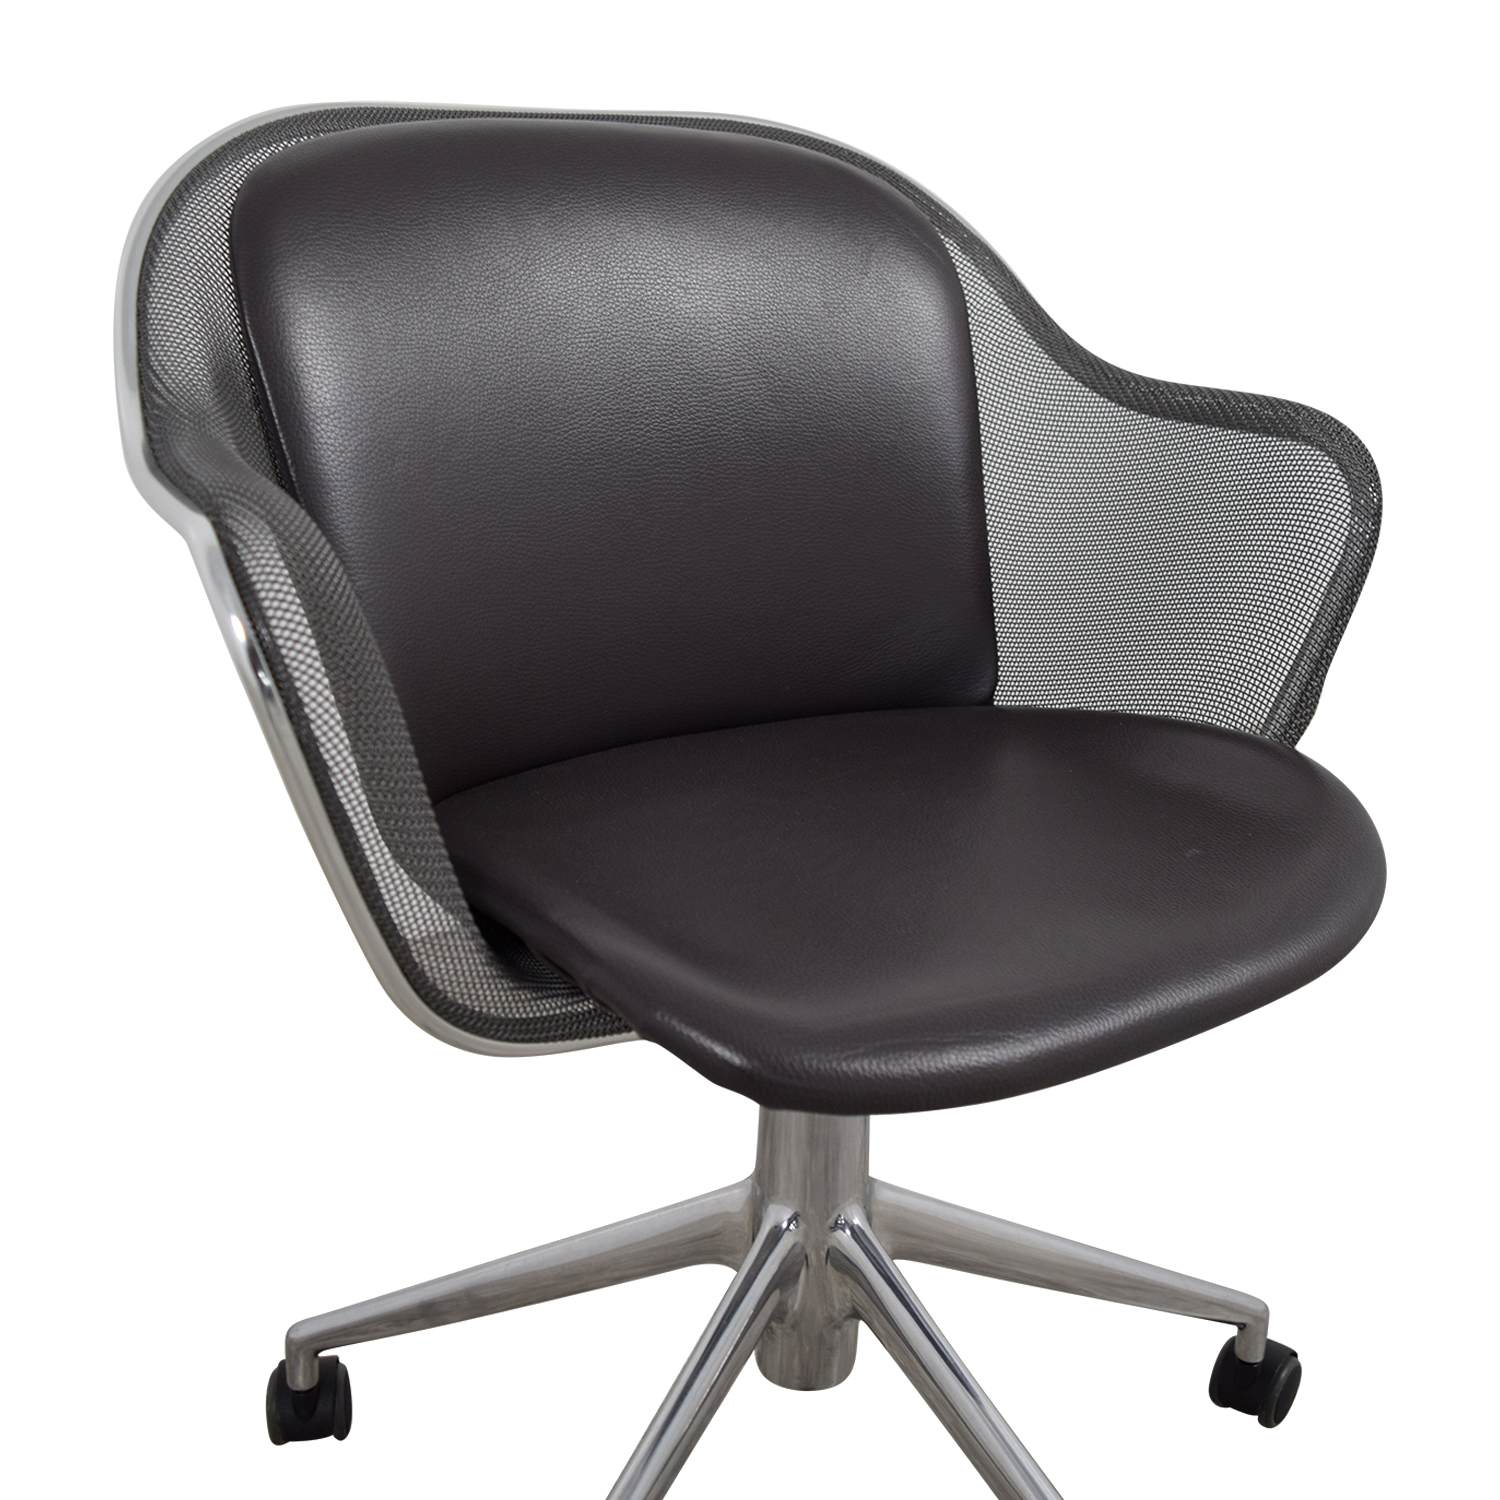 B & B Italia Grey Leather Desk Chair / Home Office Chairs